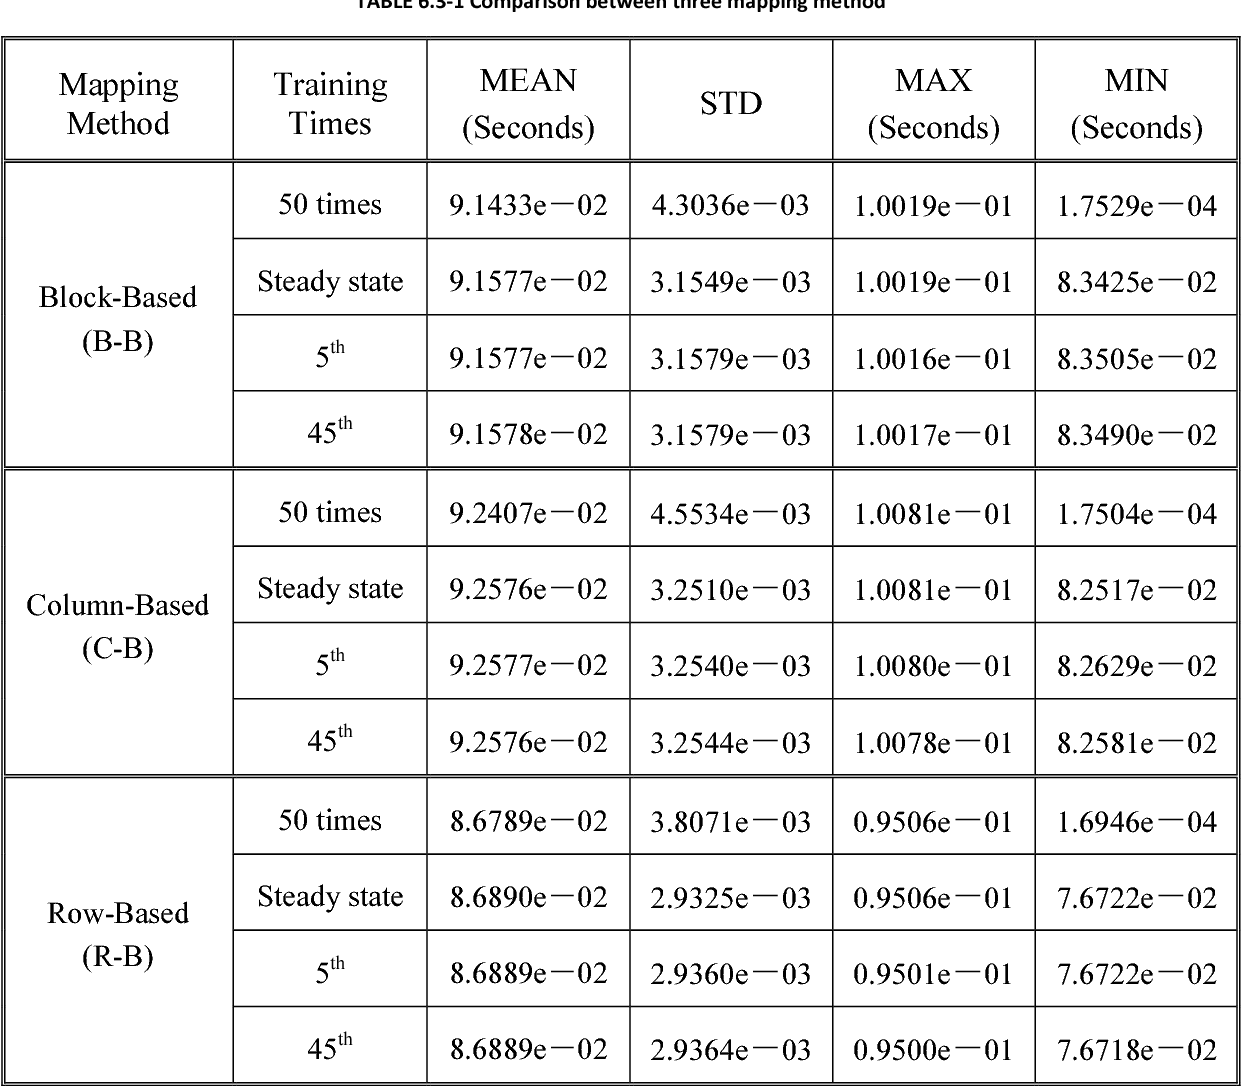 TABLE 6.3-1 Comparison between three mapping method